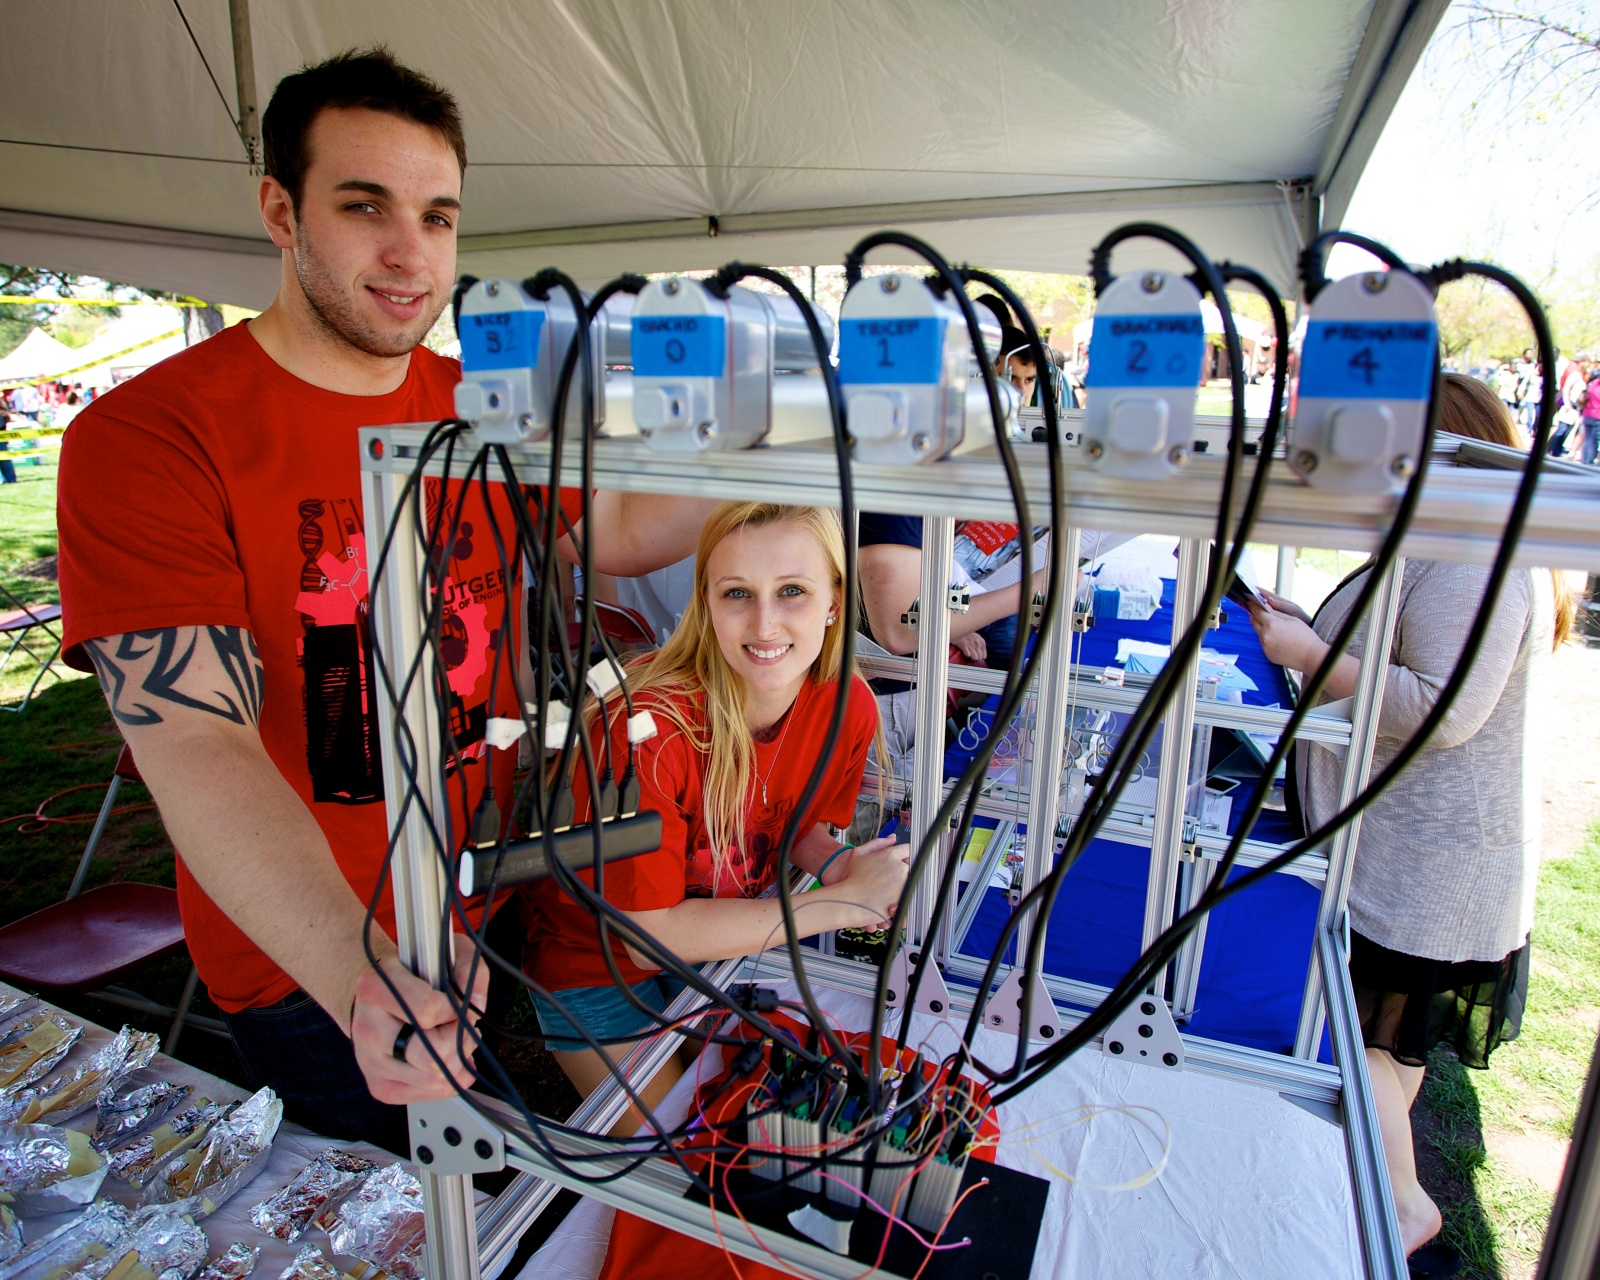 Industrial And Systems Engineering  Rutgers University. Online Research Companies Create Own Business. Starbucks Benefits Eligibility. Tennessee Private Colleges Burping A Newborn. New Zealand Travel Companies. Chowan University Athletics What Is Mortgage. Alliance Bernstein Los Angeles. Assisted Living Orlando Greek Yogurt Pancakes. Harcourt Social Studies Grade 5 Online Textbook